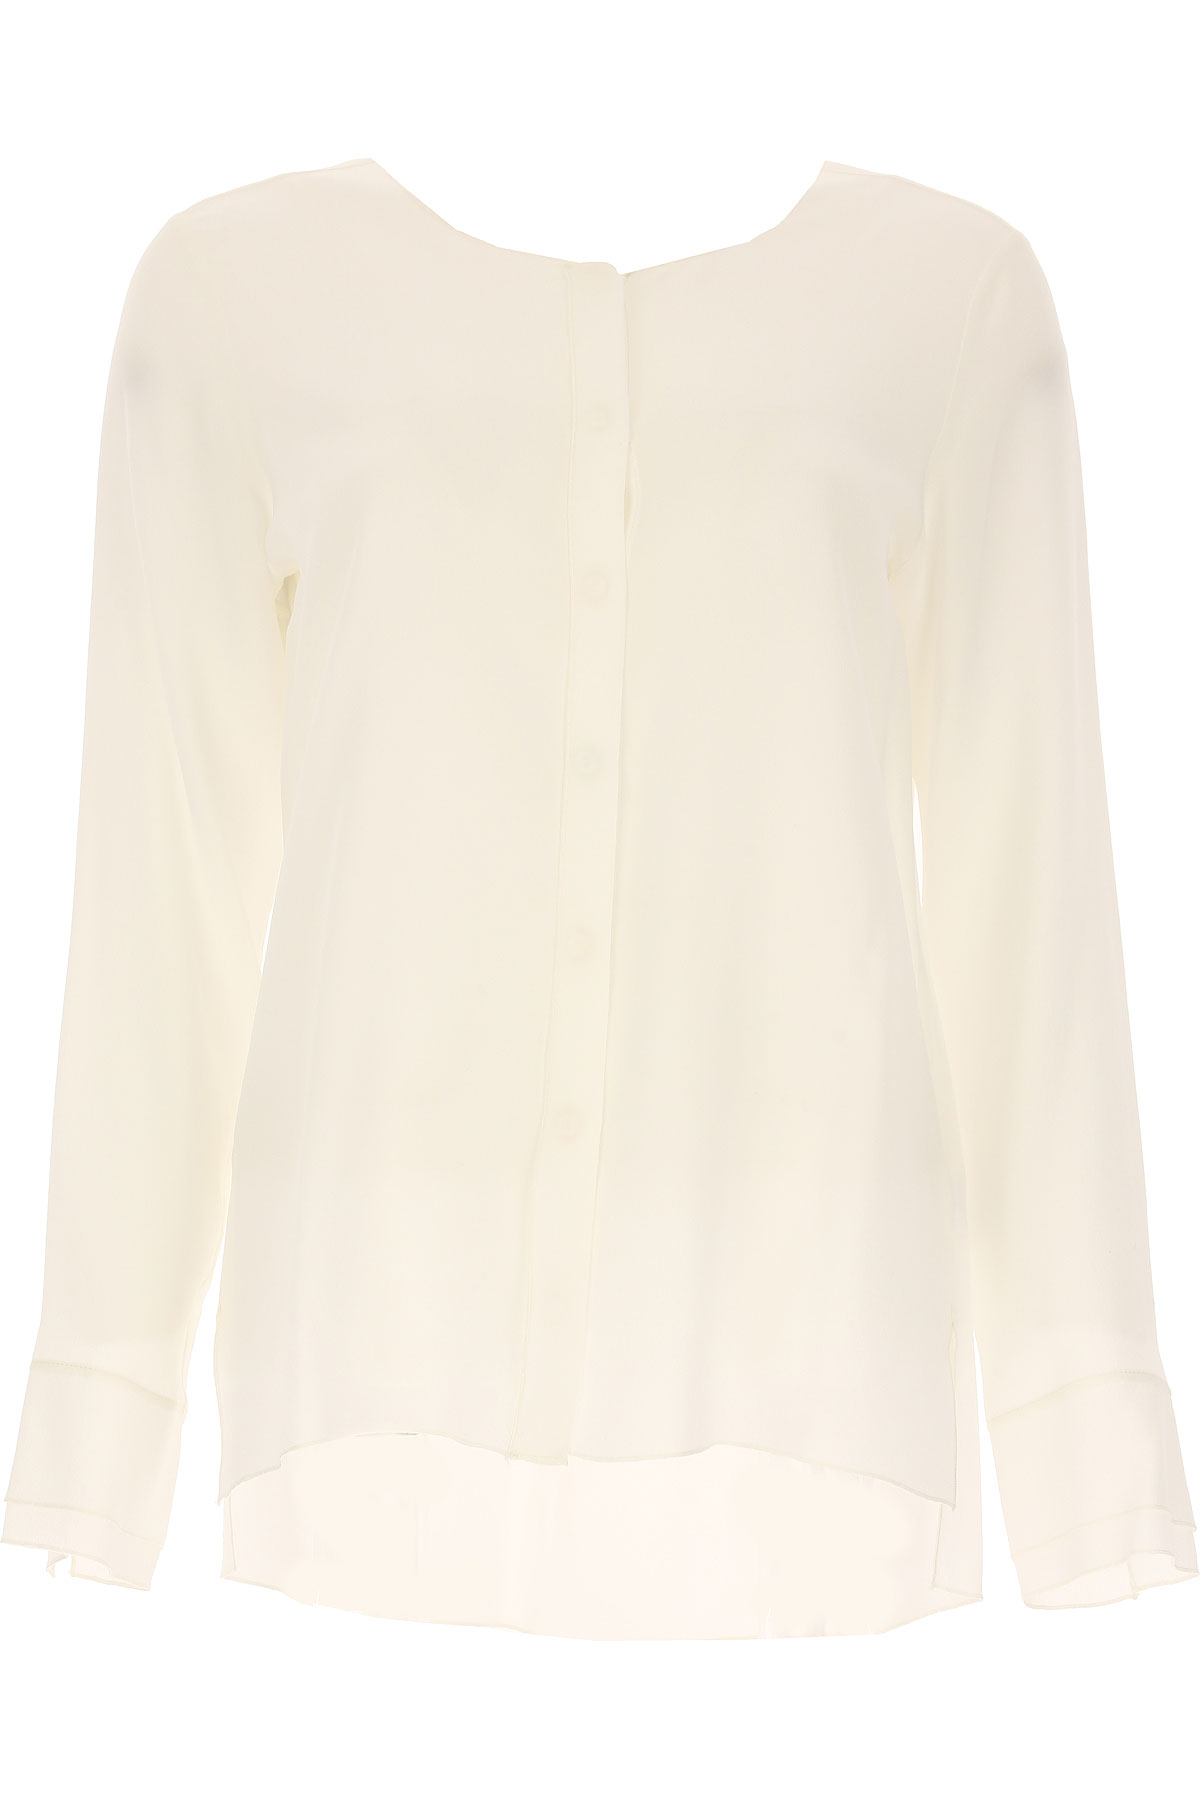 Image of Her Shirt Shirt for Women On Sale, White, Silk, 2017, 10 2 4 6 8